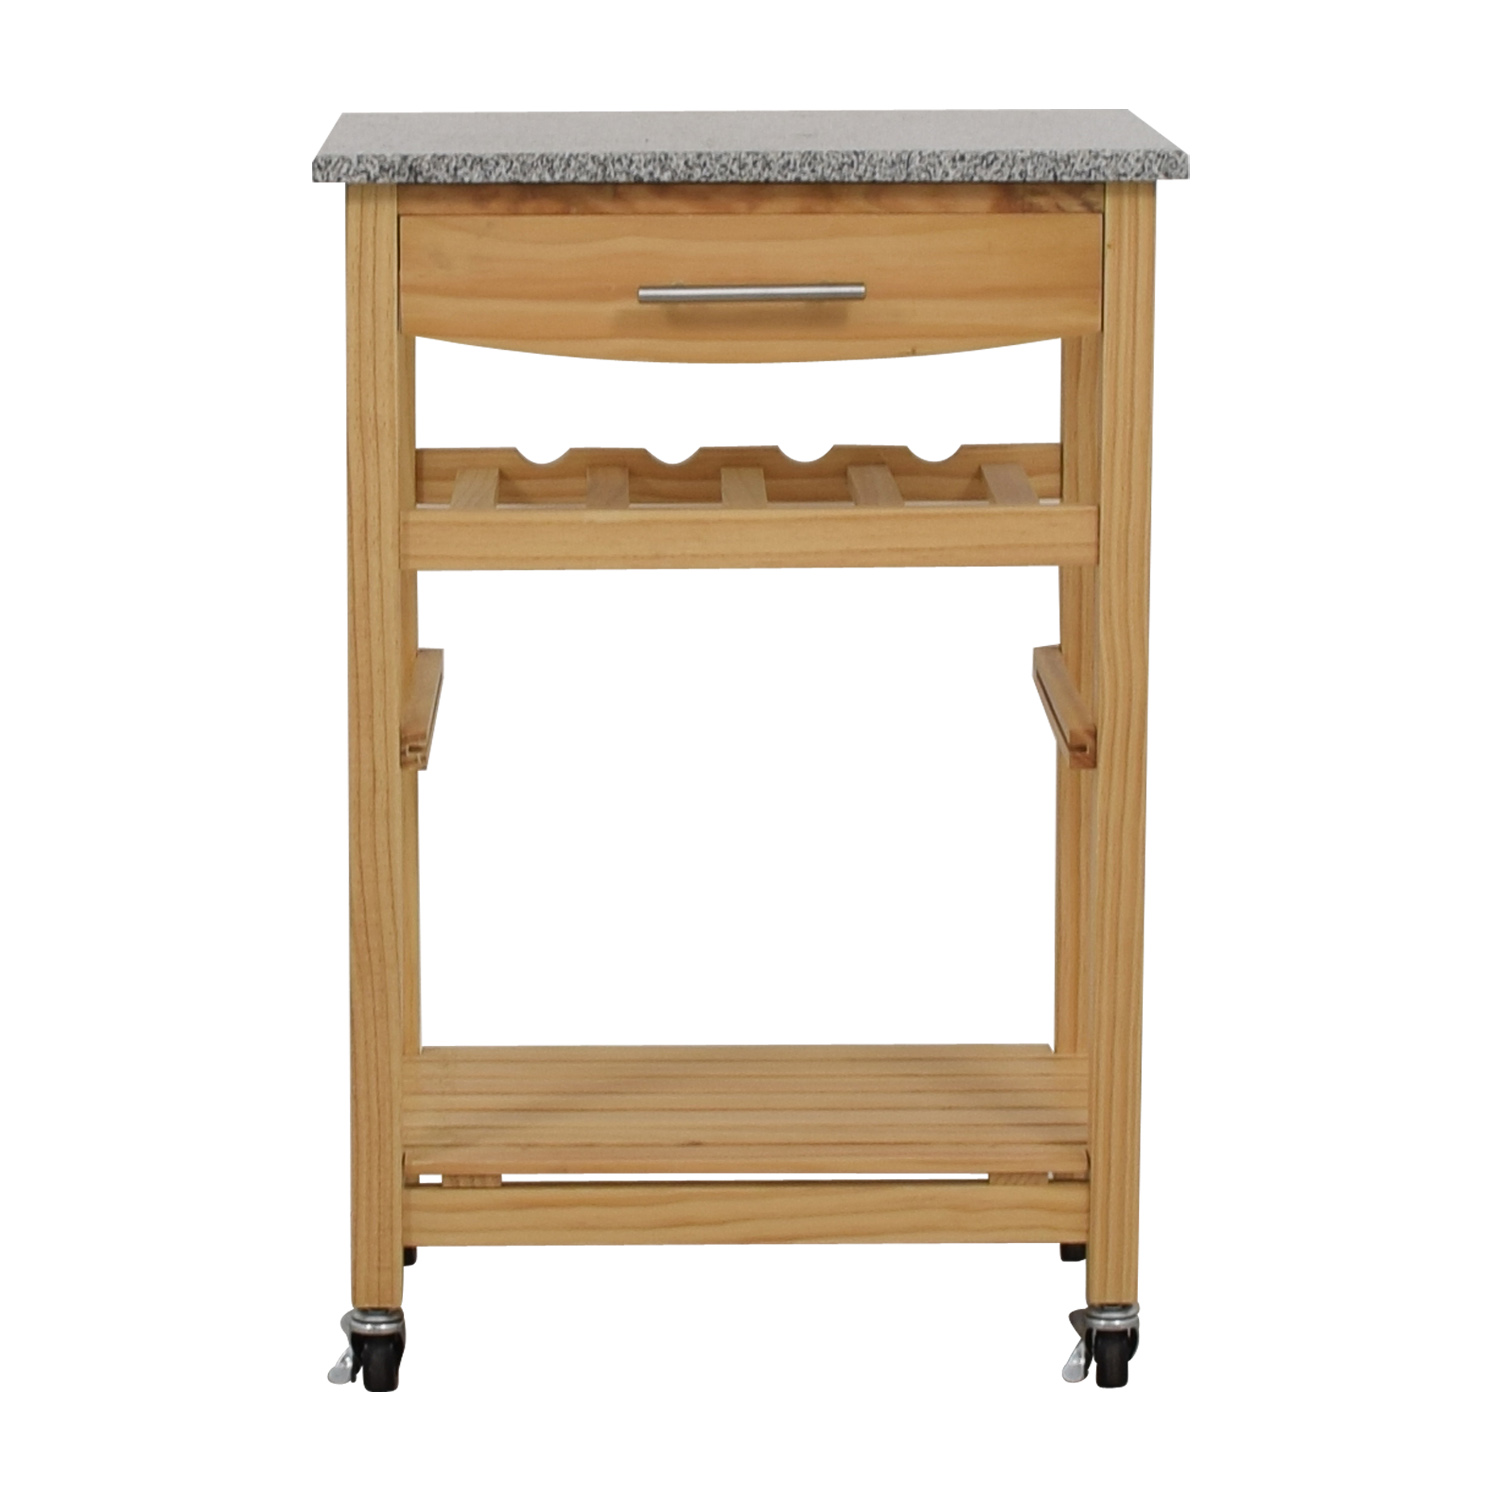 World Market Natural Kitchen Cart with Counter Top / Utility Tables